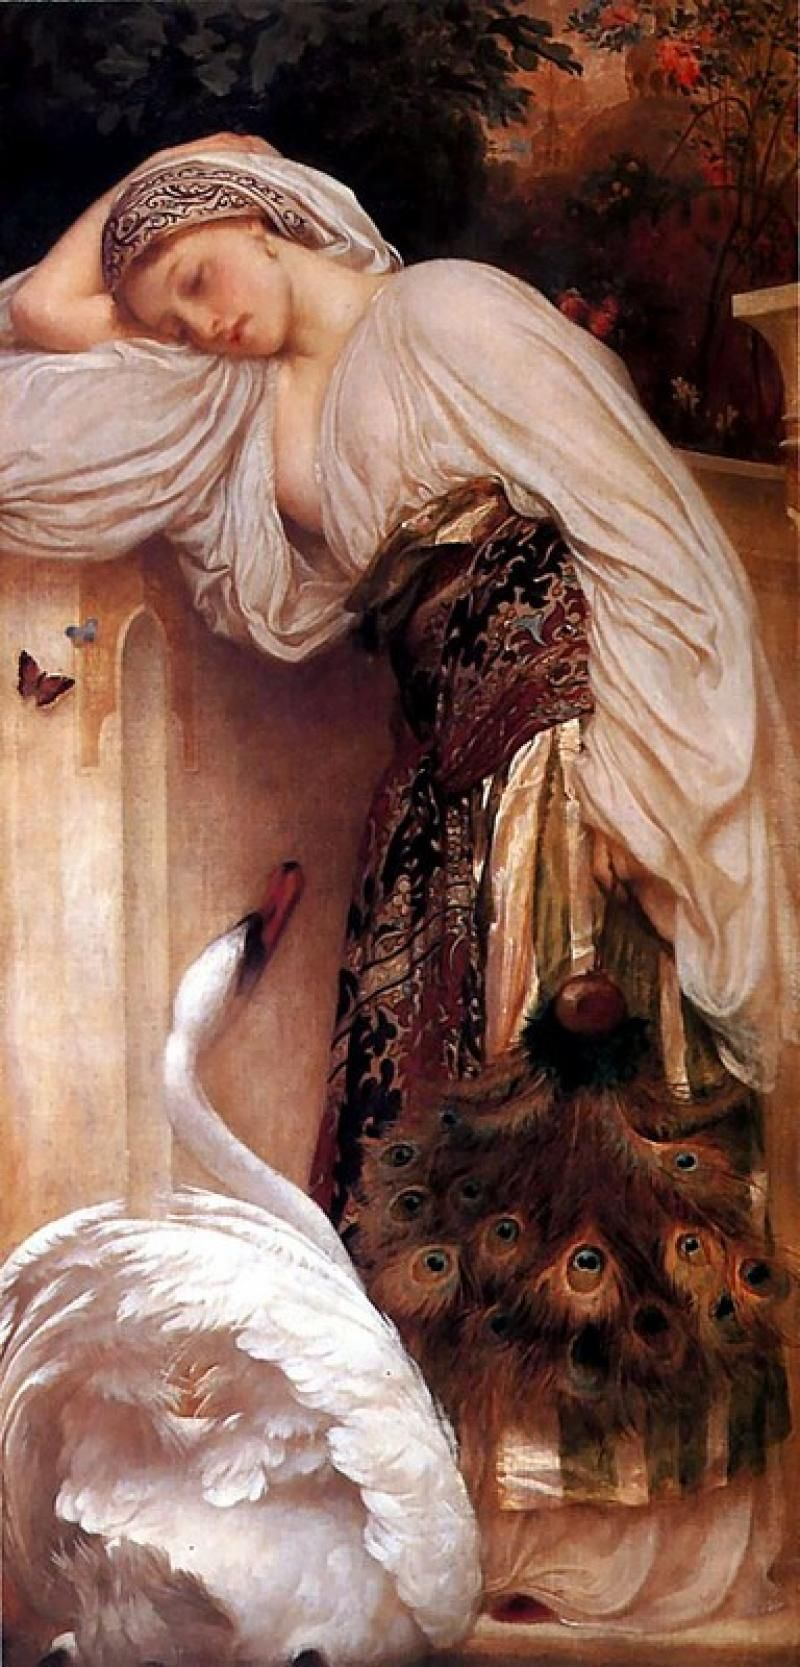 Odalisque, by Sir Frederick Leighton, 1862.